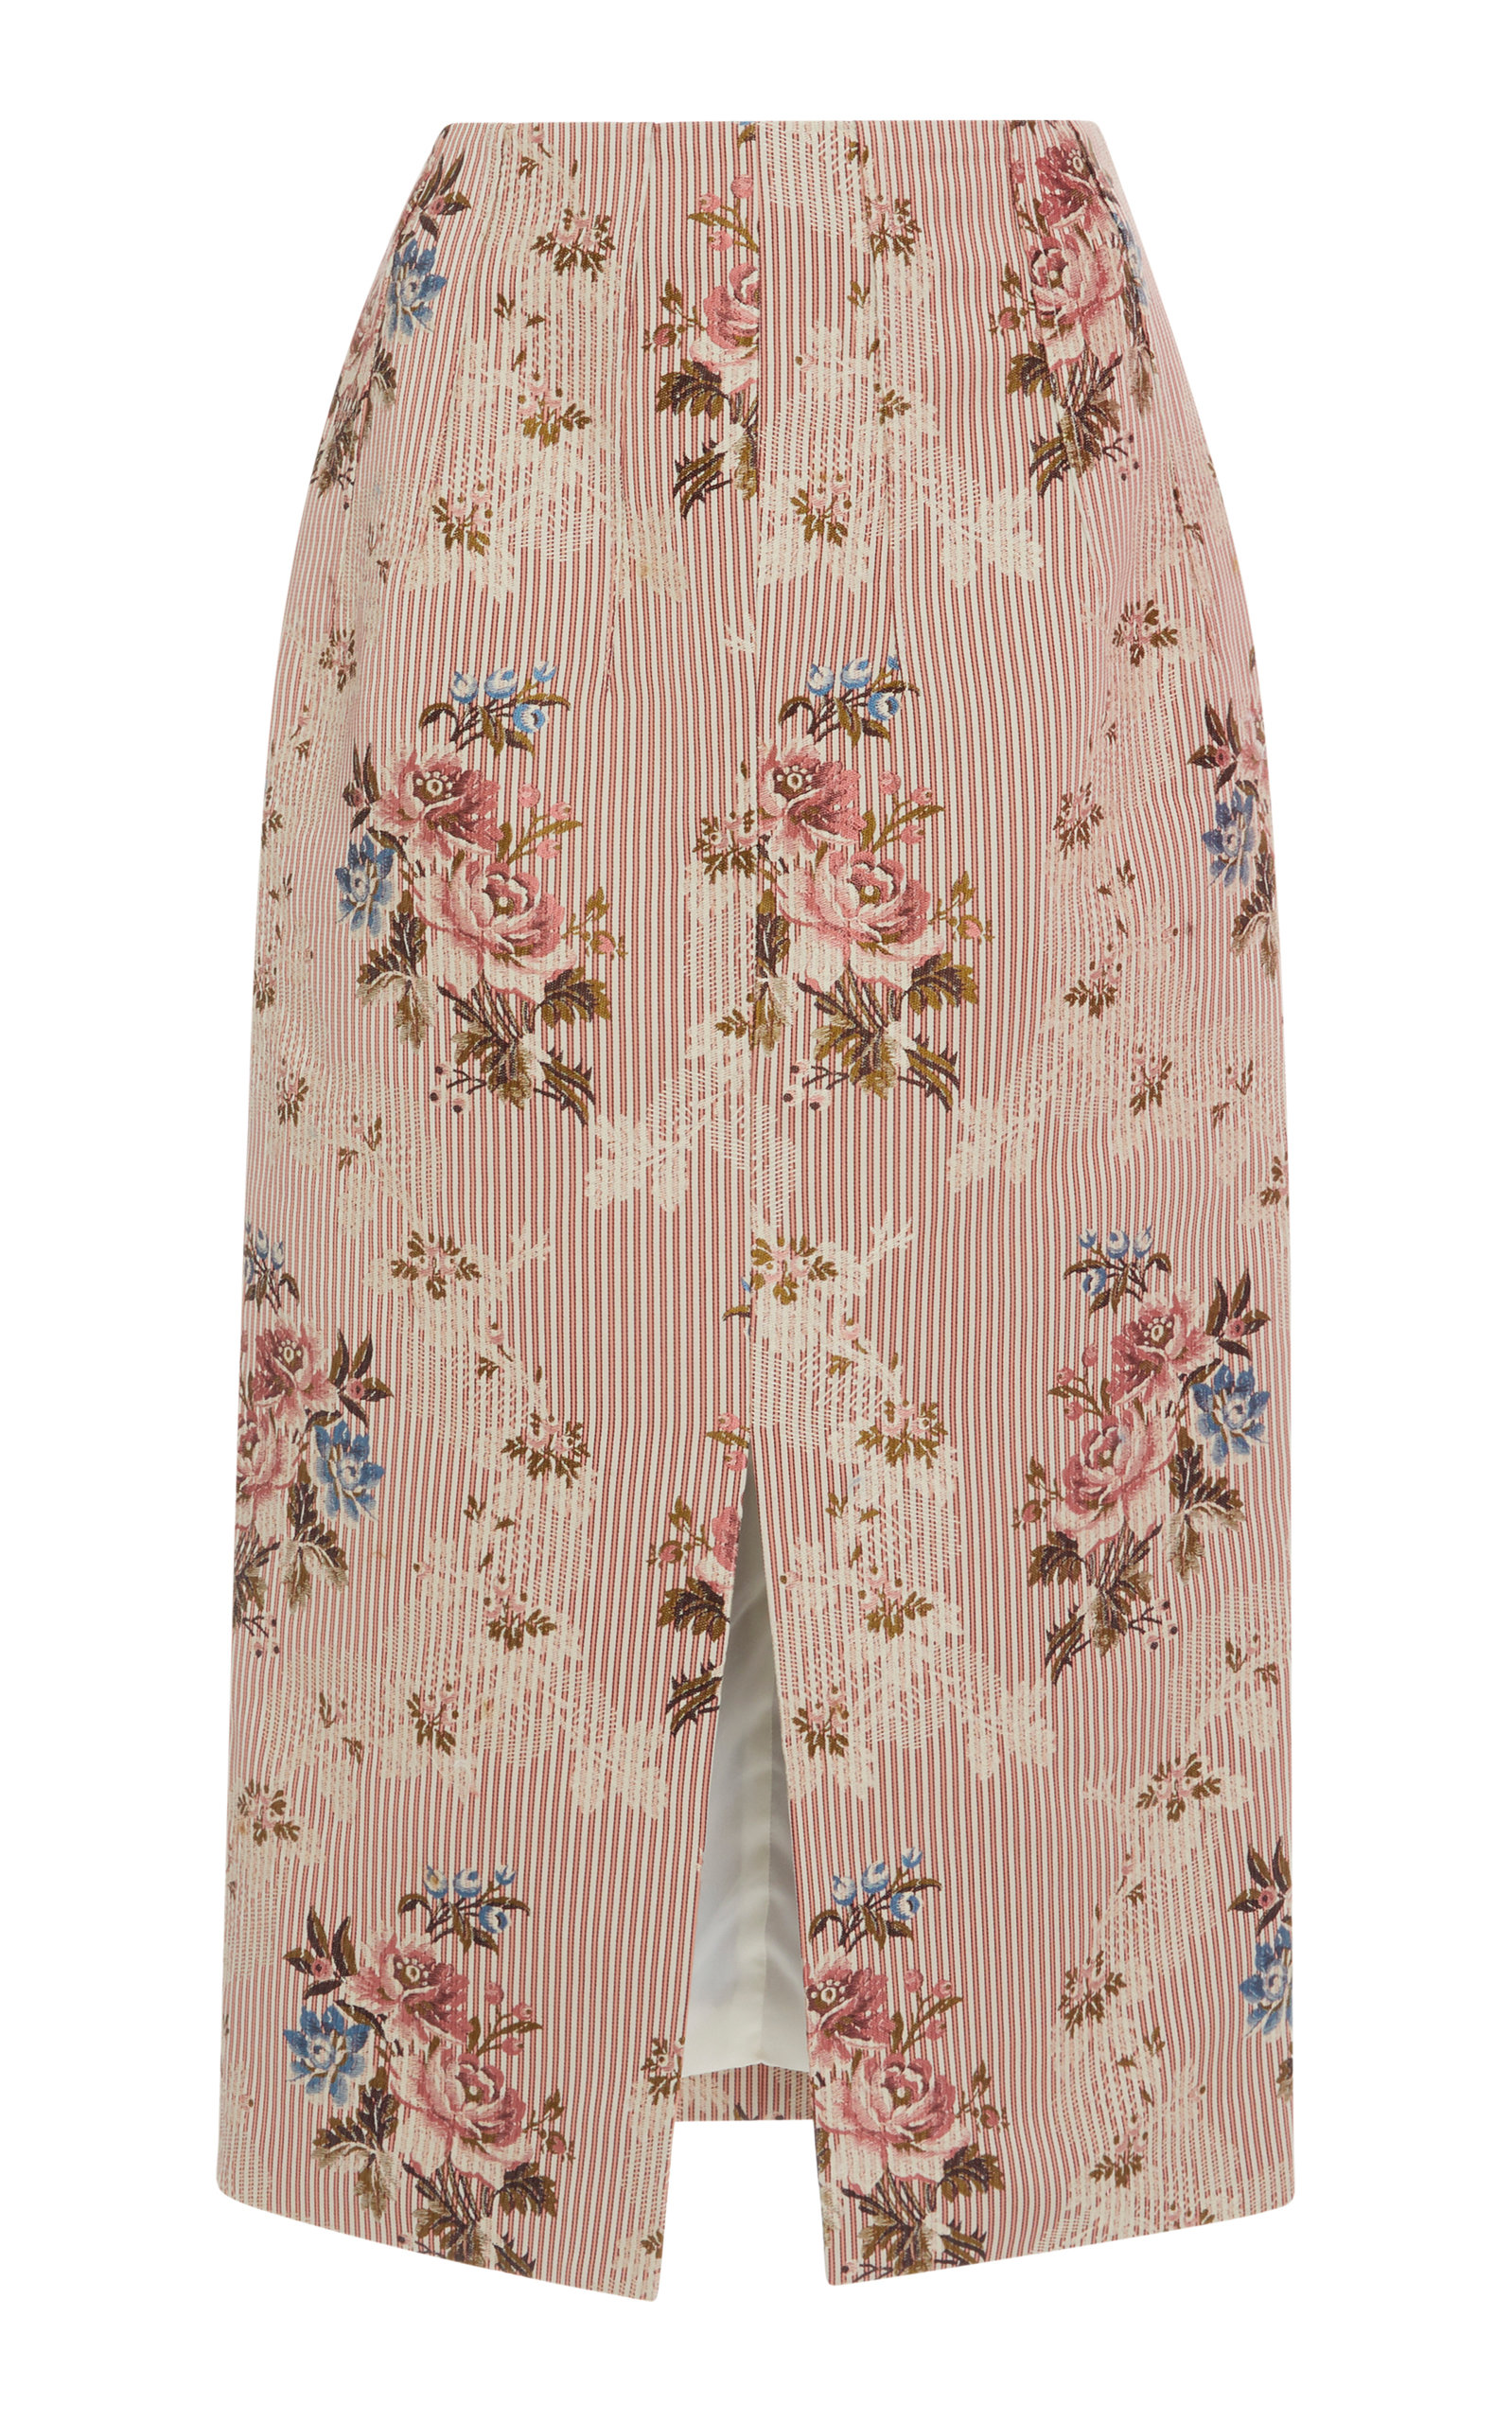 BROCK COLLECTION Sorrel Cotton And Silk-Blend Jacquard Skirt in Blush